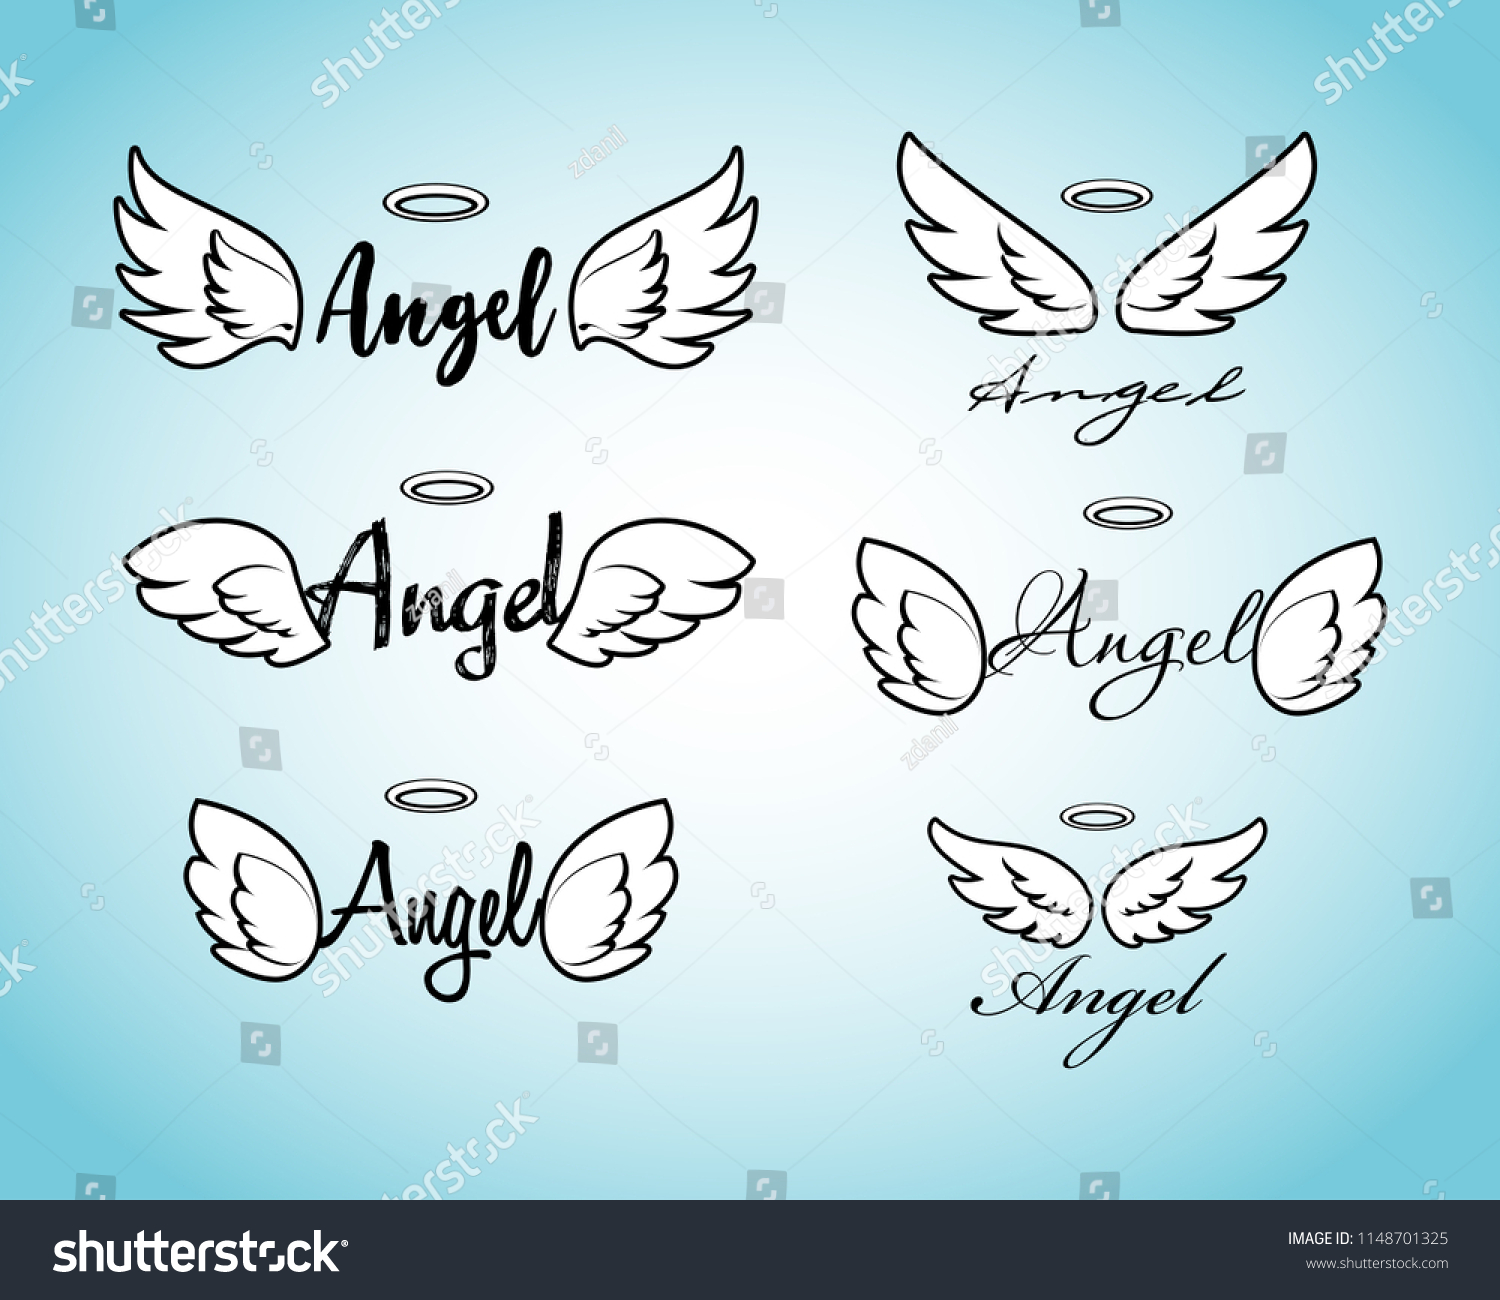 6c21c24e93b2d Doodle flying angel wings with halo. Sketch angelic wings. Freedom and  religious tattoo vector design isolated on white background.